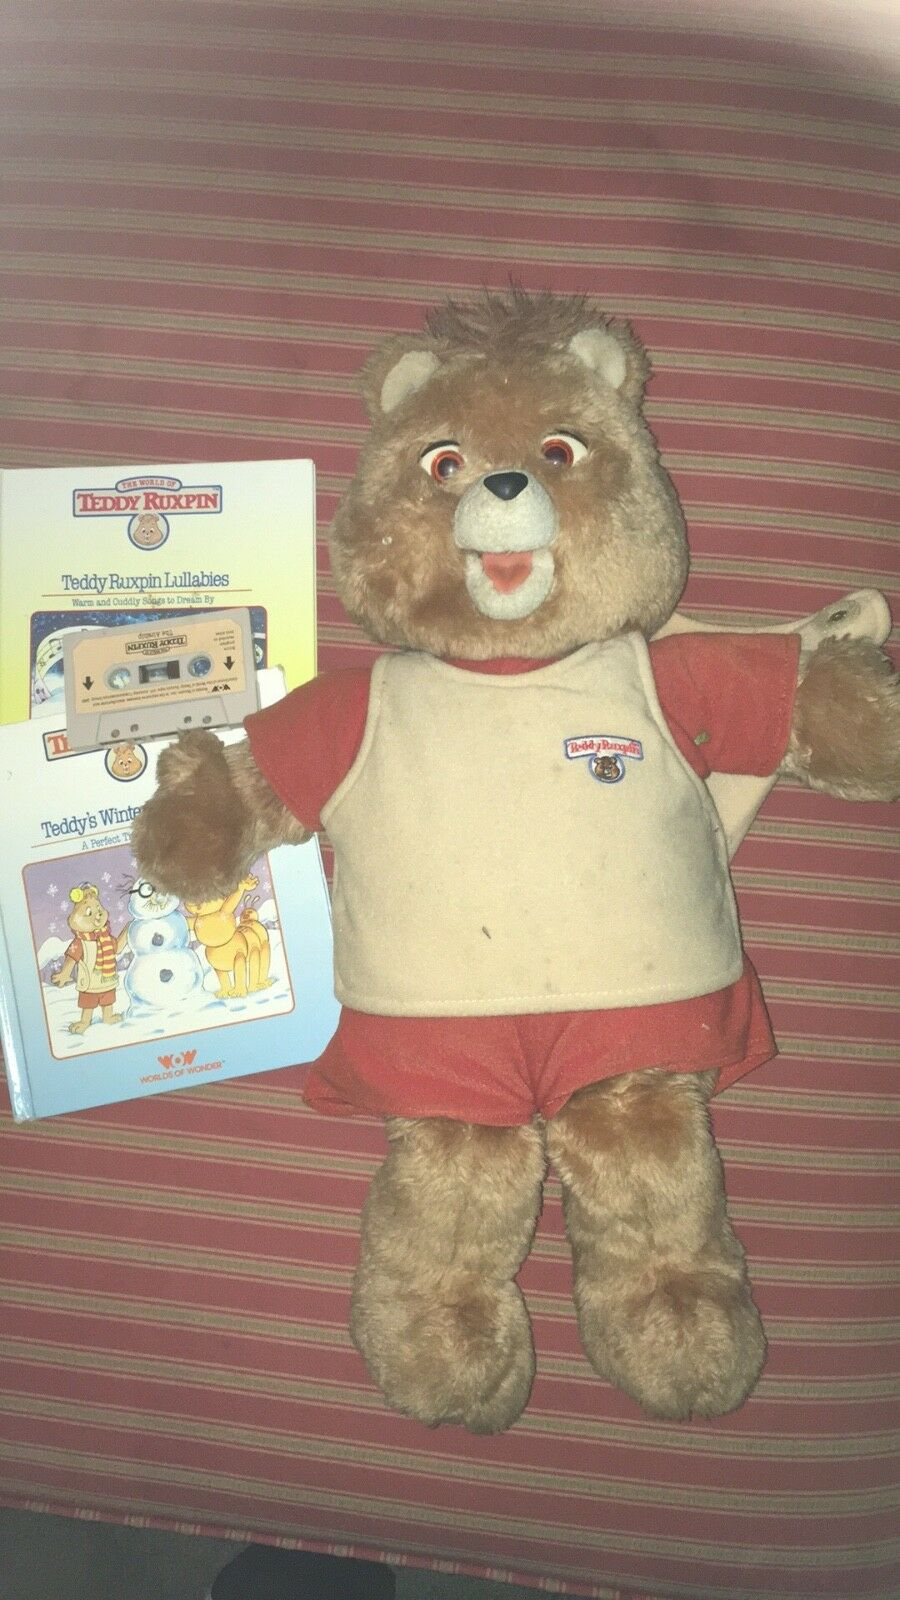 1985 Teddy Ruxpin- Vintage- Missing battery cover. AS-IS due to being untested